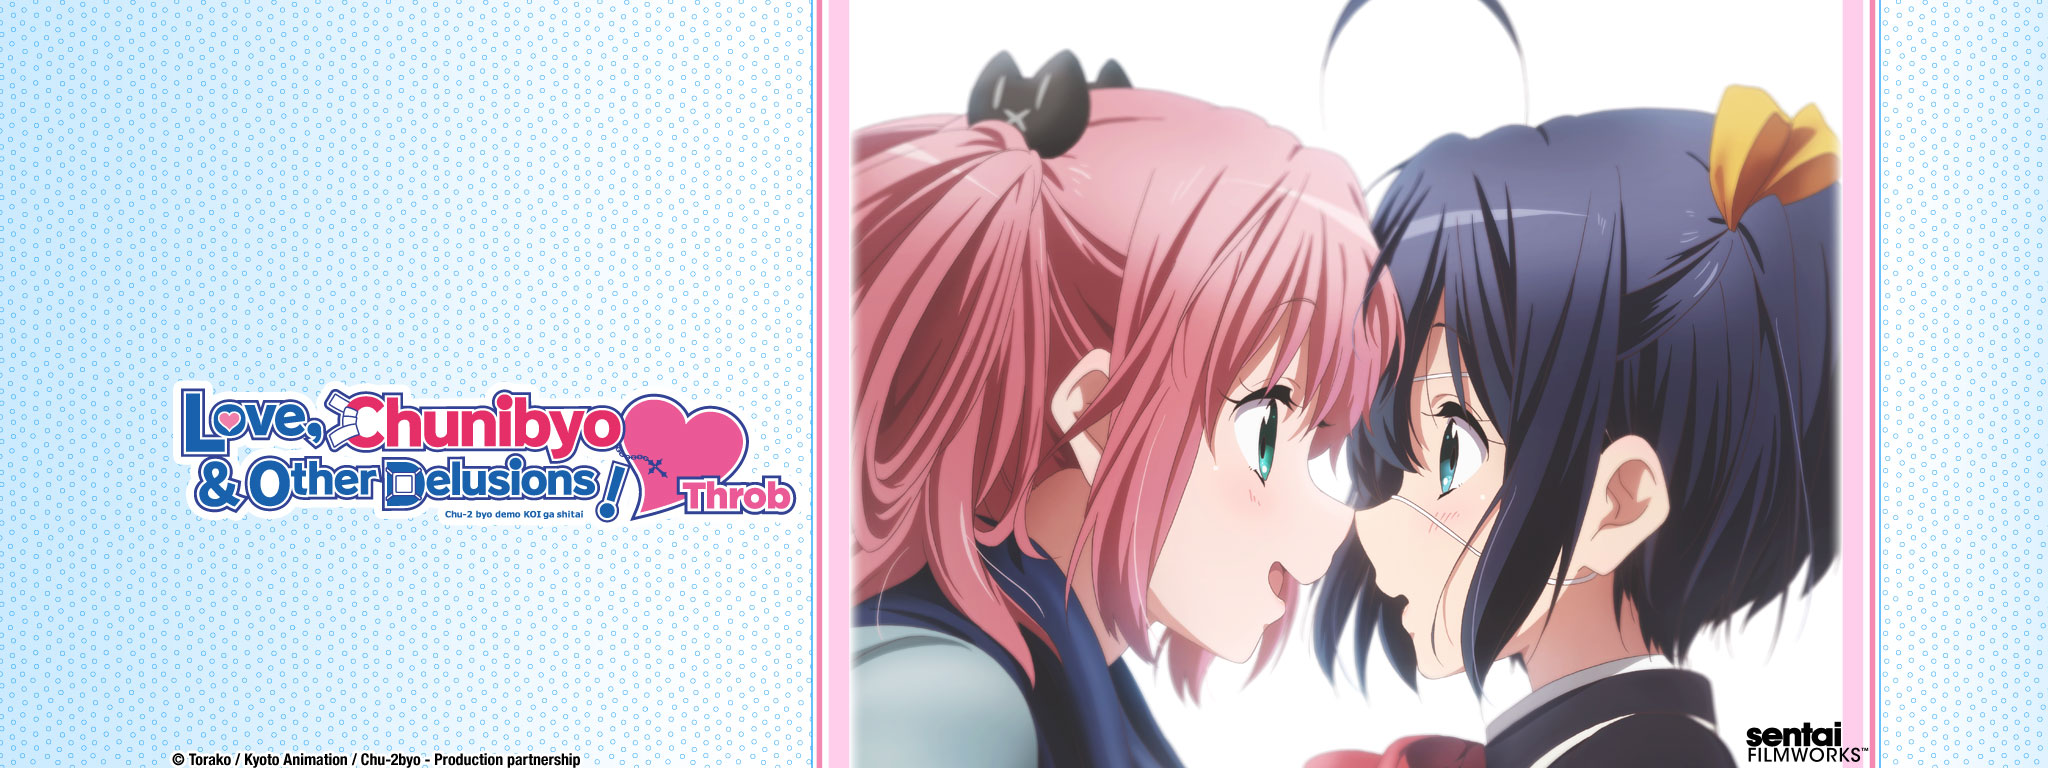 Love, Chunibyo & Other Delusions! -Heart Throb-